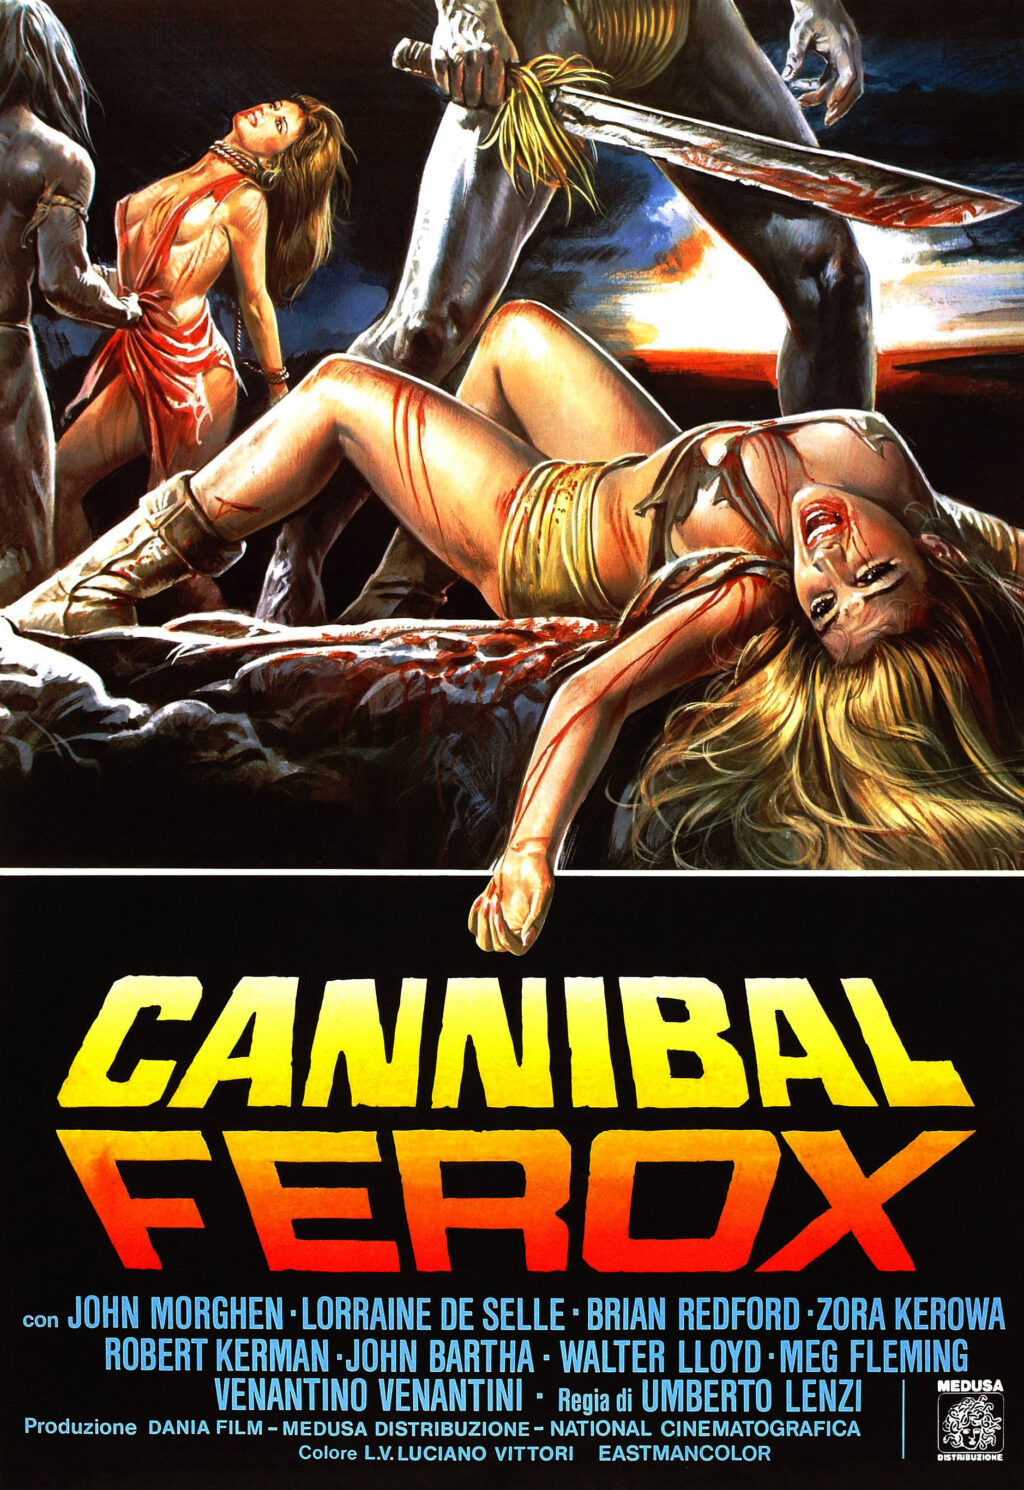 1. Cannibal Ferox 1024x1490 - With Chianti & Fava Beans: Celebrating a Few of the Best Cannibal Horror Movies